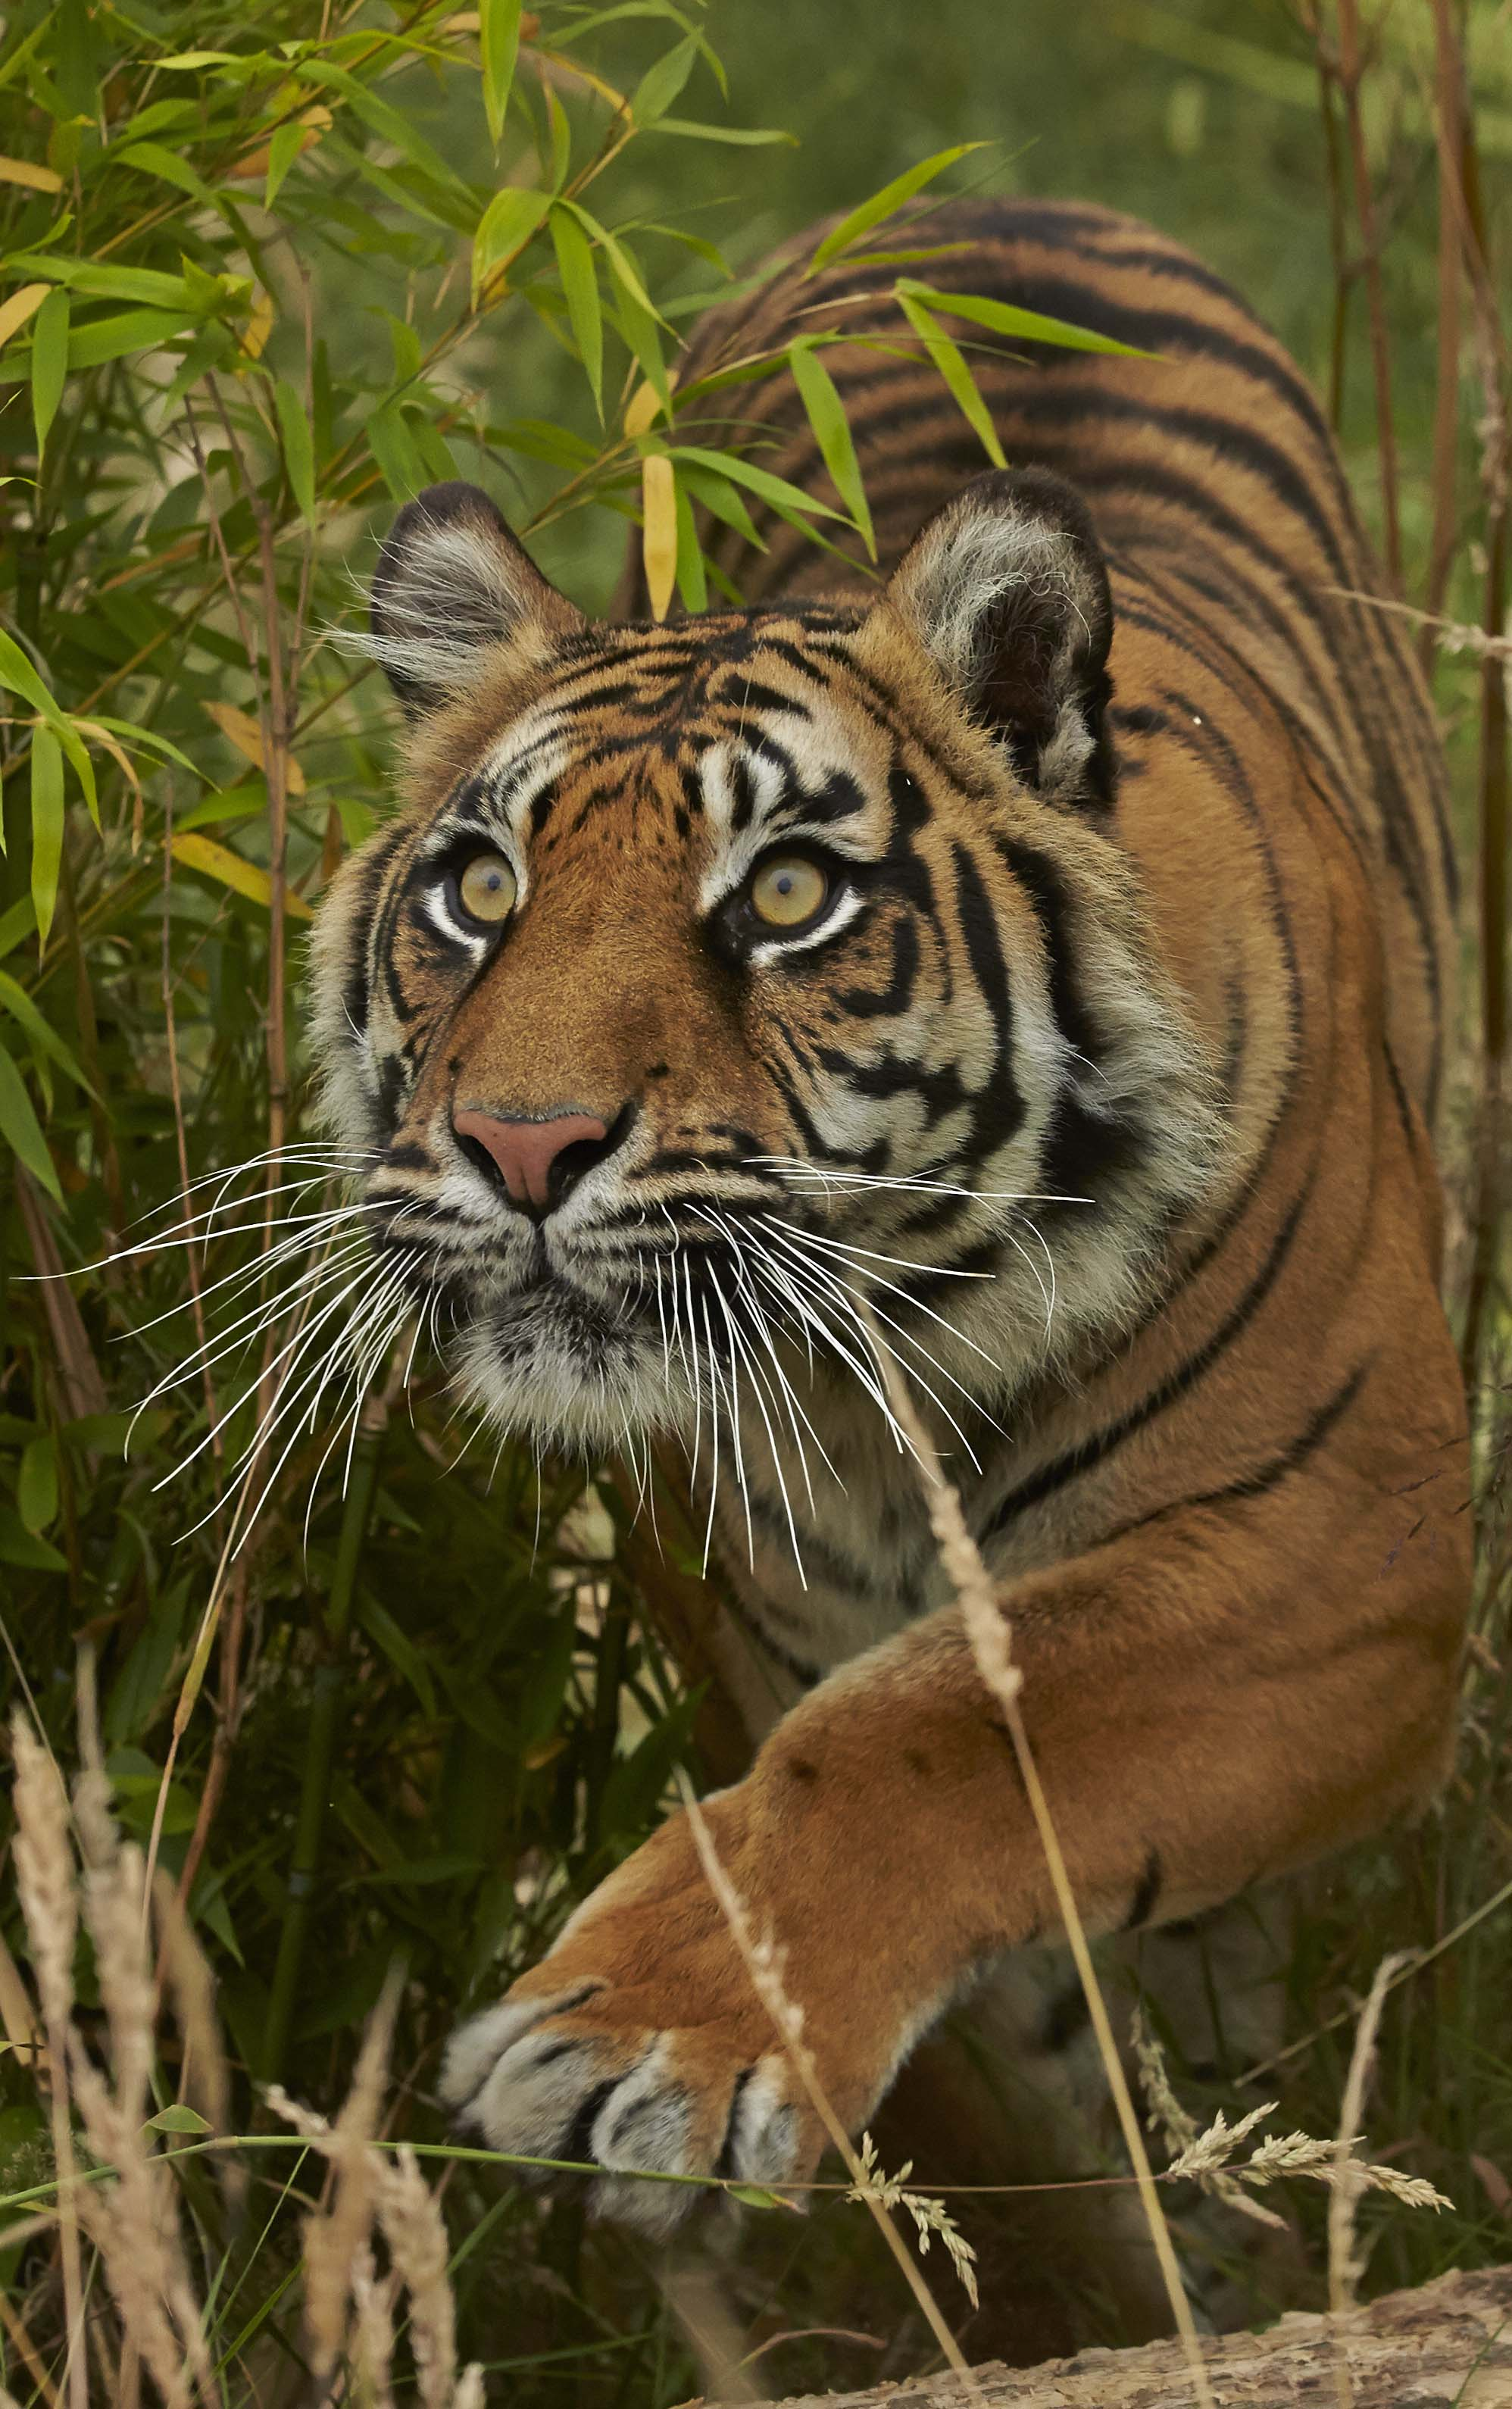 Tigers photographed at Hamerton Zoo by John Wright.